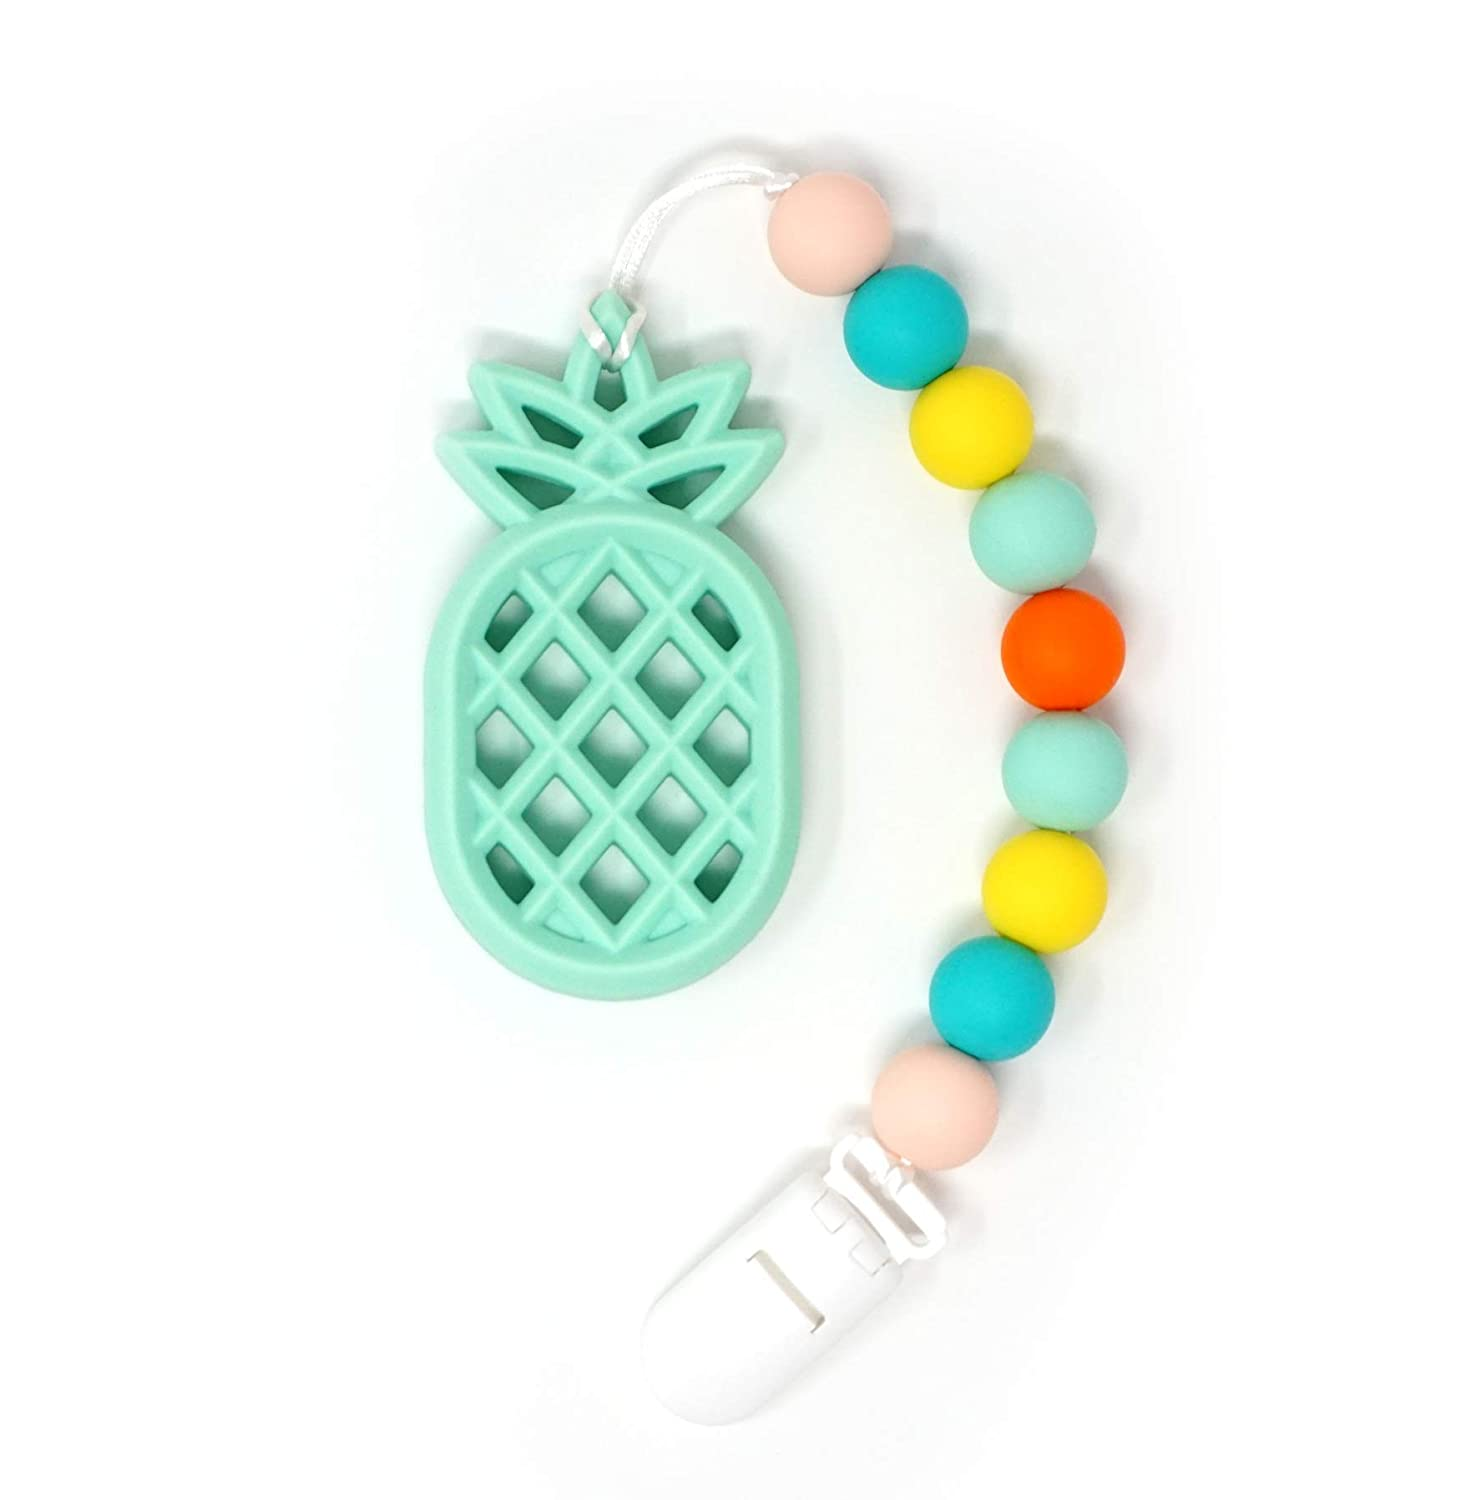 Meerkatto Silicone Pineapple Teether Mint